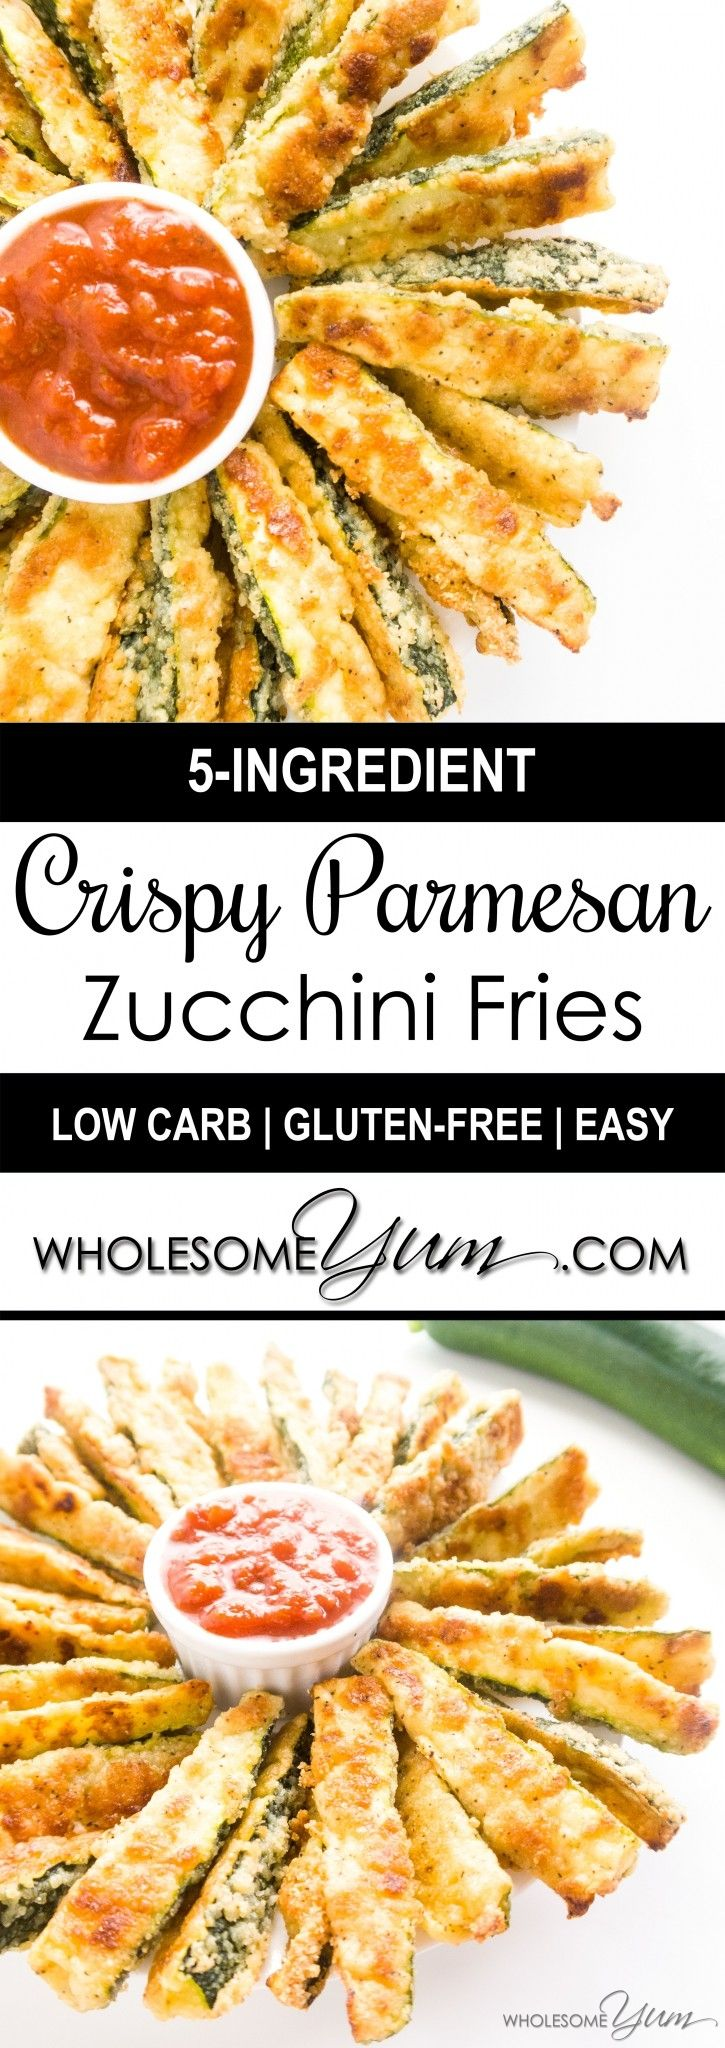 Crispy Parmesan Zucchini Fries (Low Carb, Gluten-free)